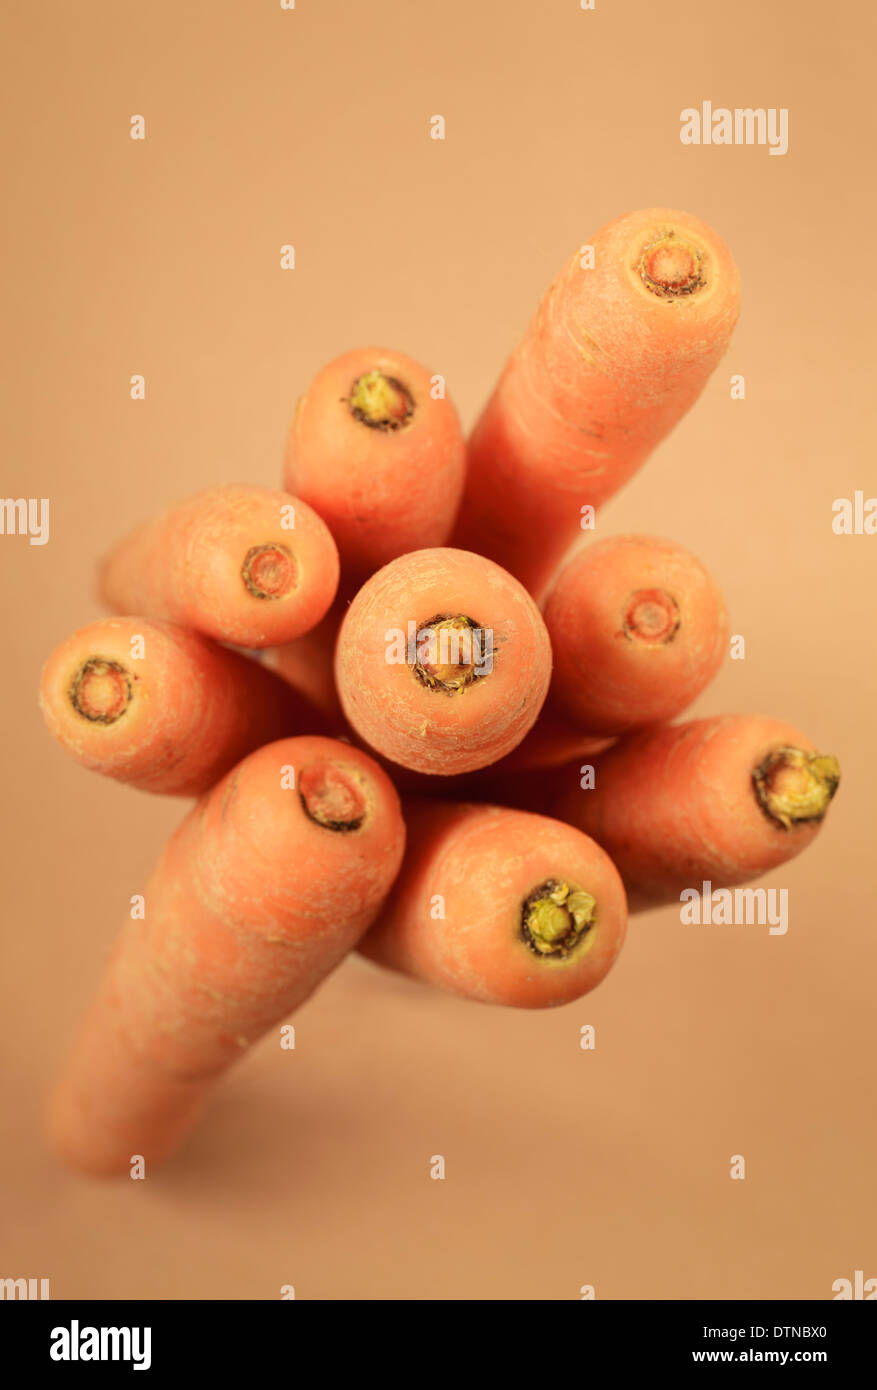 Bunch of carrots top view - Stock Image